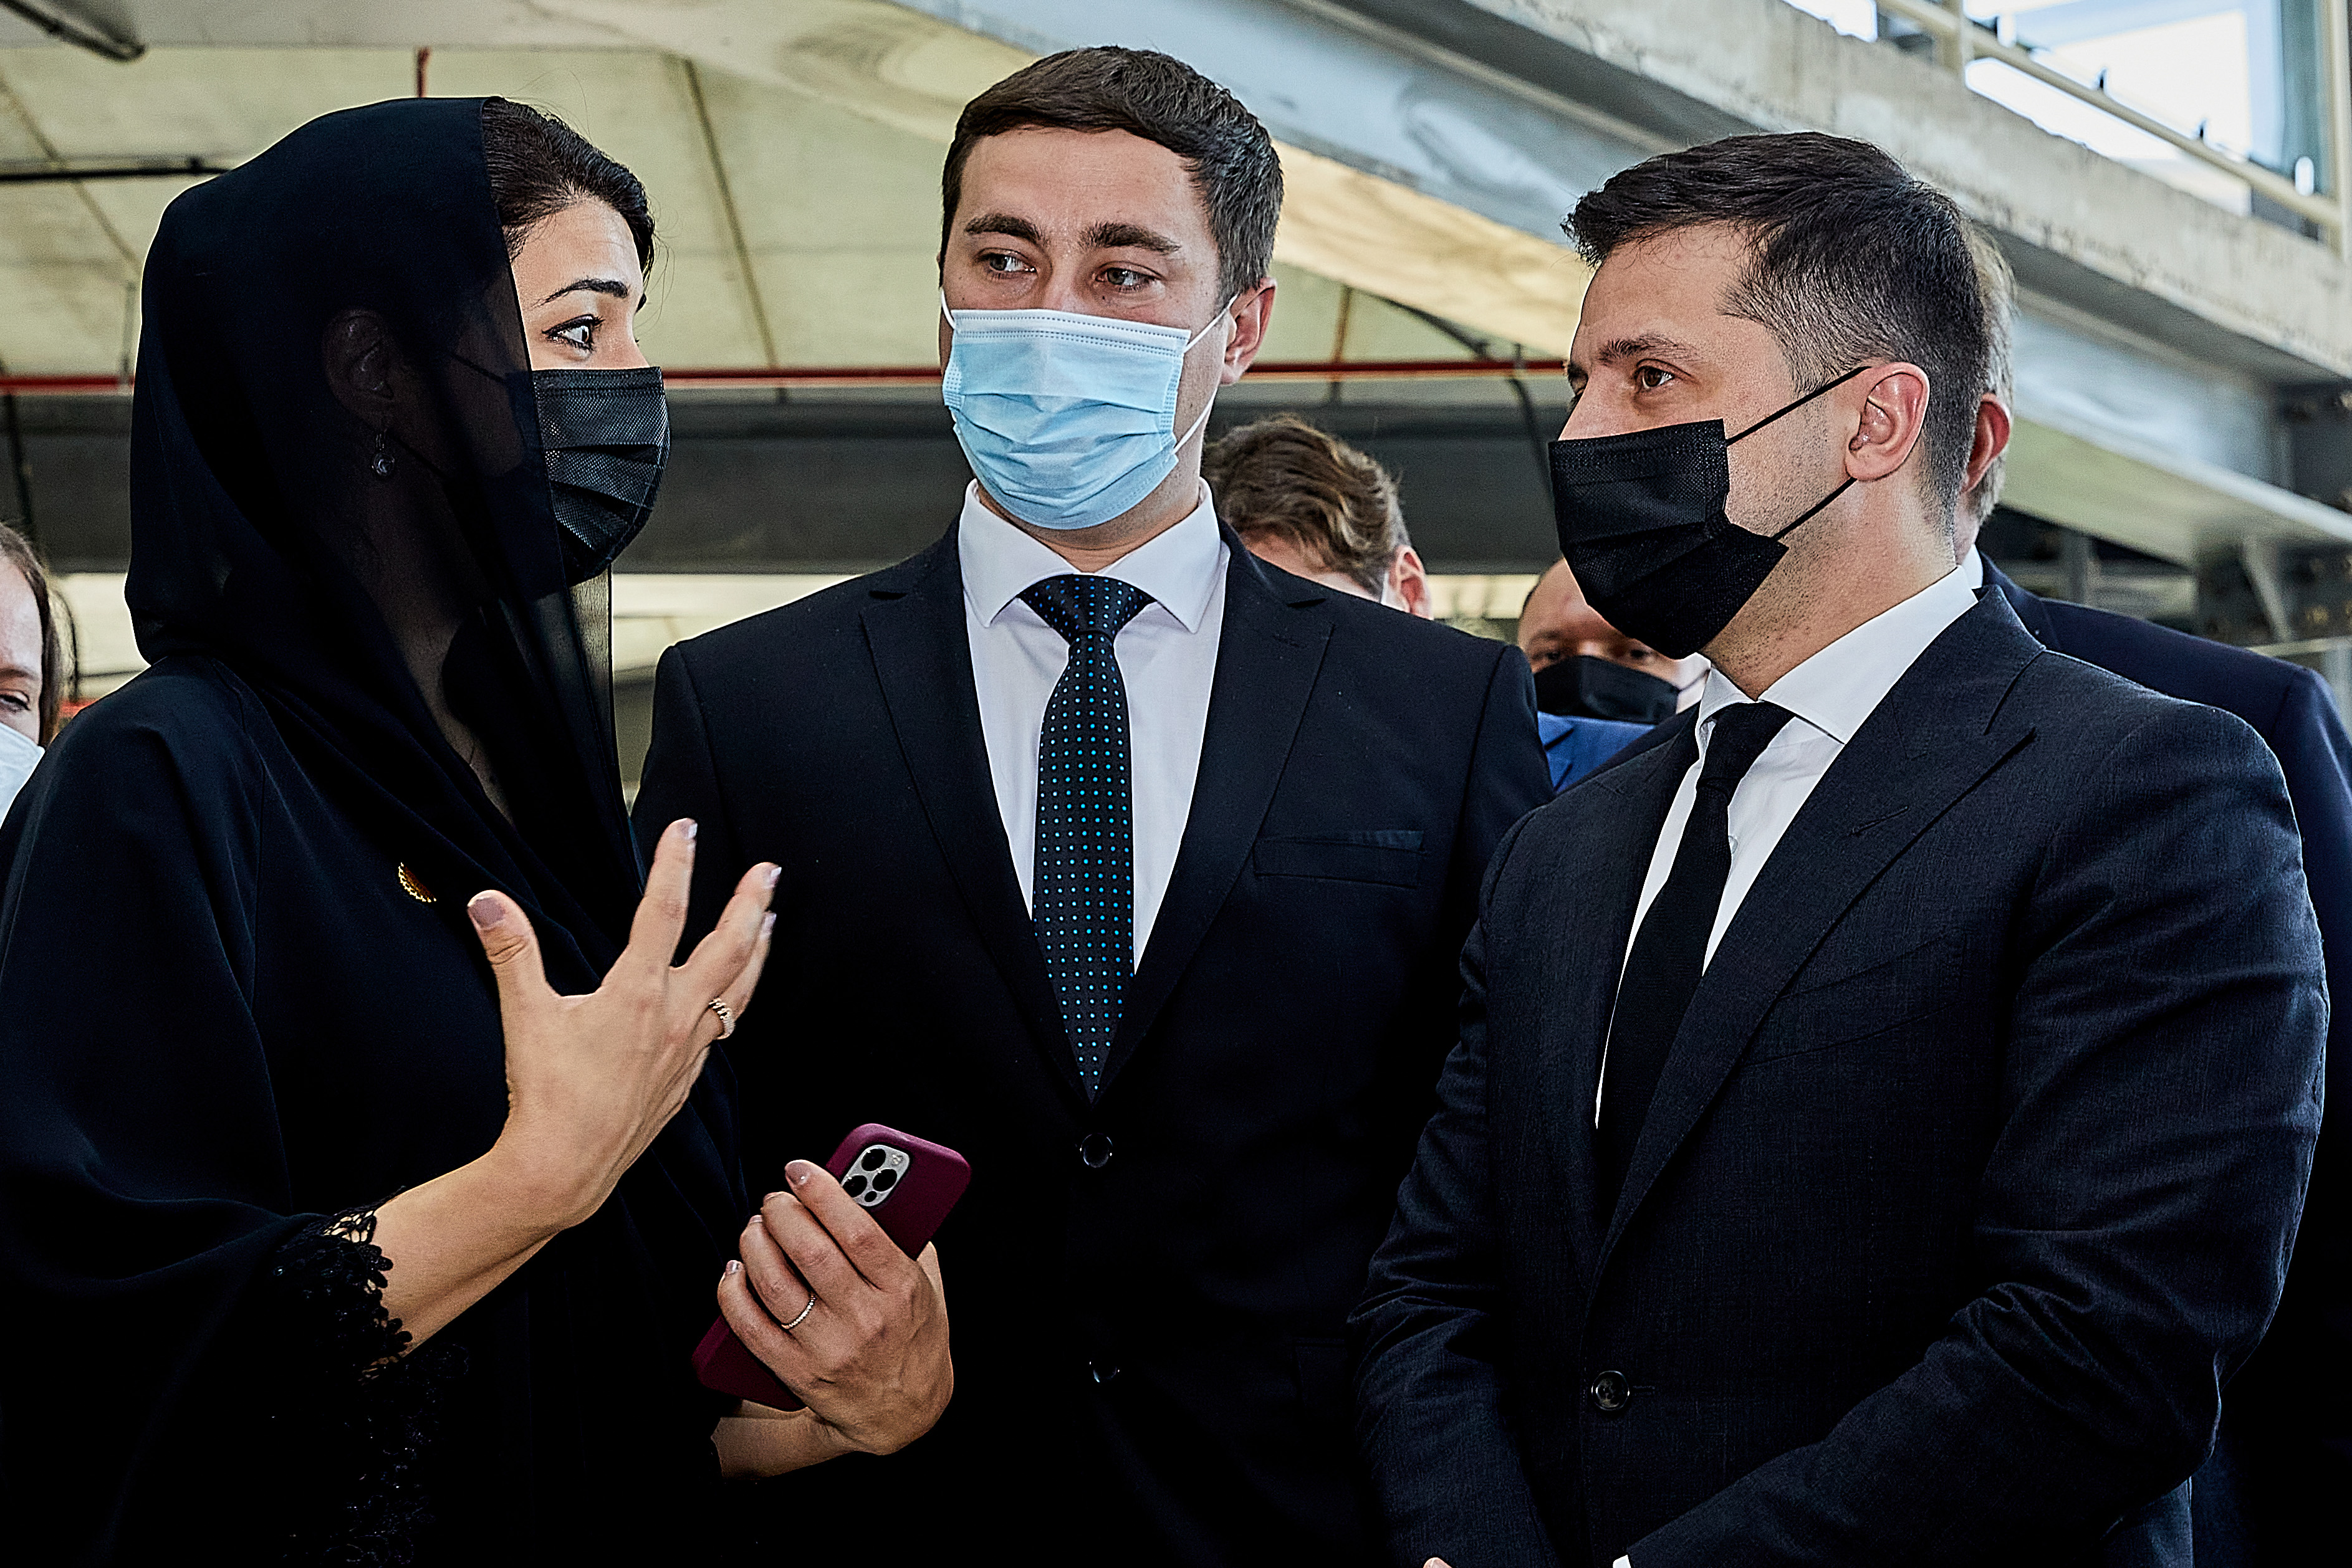 DUBAI, FEBRUARY 15 2021: Her Excellency Reem Al Hashimy UAE Minister of State for International Cooperation; Director General, Dubai Expo 2020 Bureau attends the visit to Terra - The Sustainability Pavilion with Volodymyr Zelensky President of Ukraine at Expo 2020 Site (Photo by Suneesh Sudhakaran/Expo 2020 Dubai)